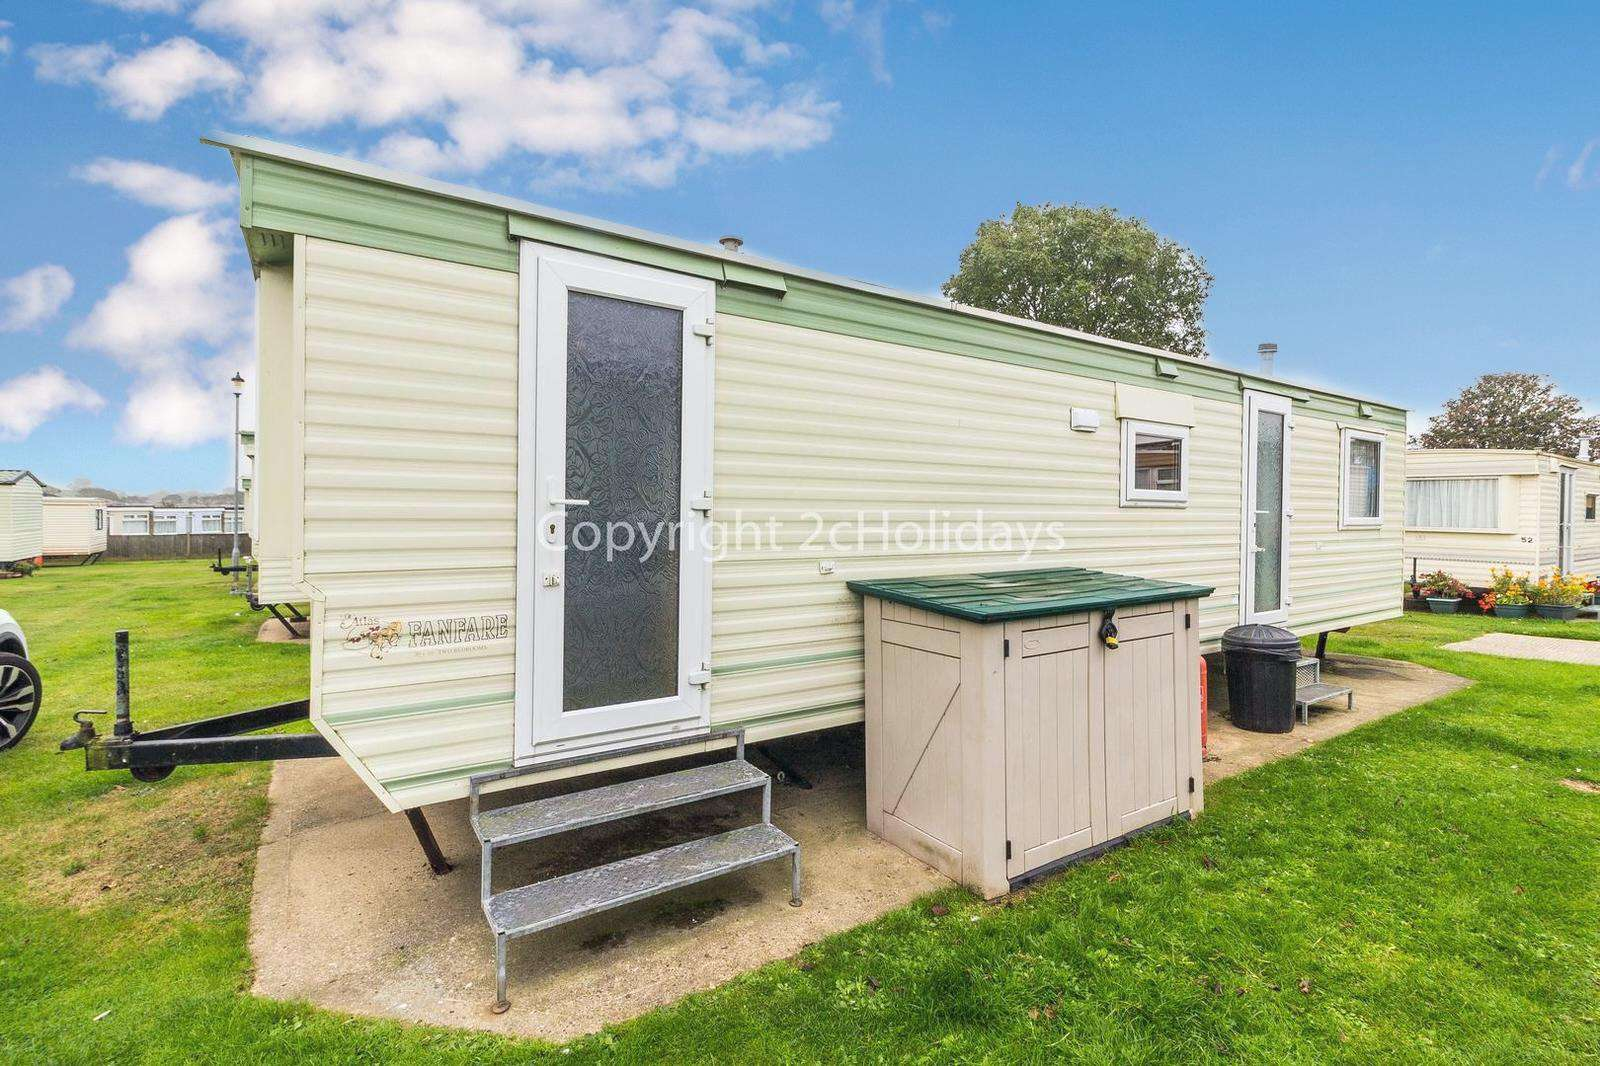 Great caravan in a lovely location just minutes away from Scratby beach!